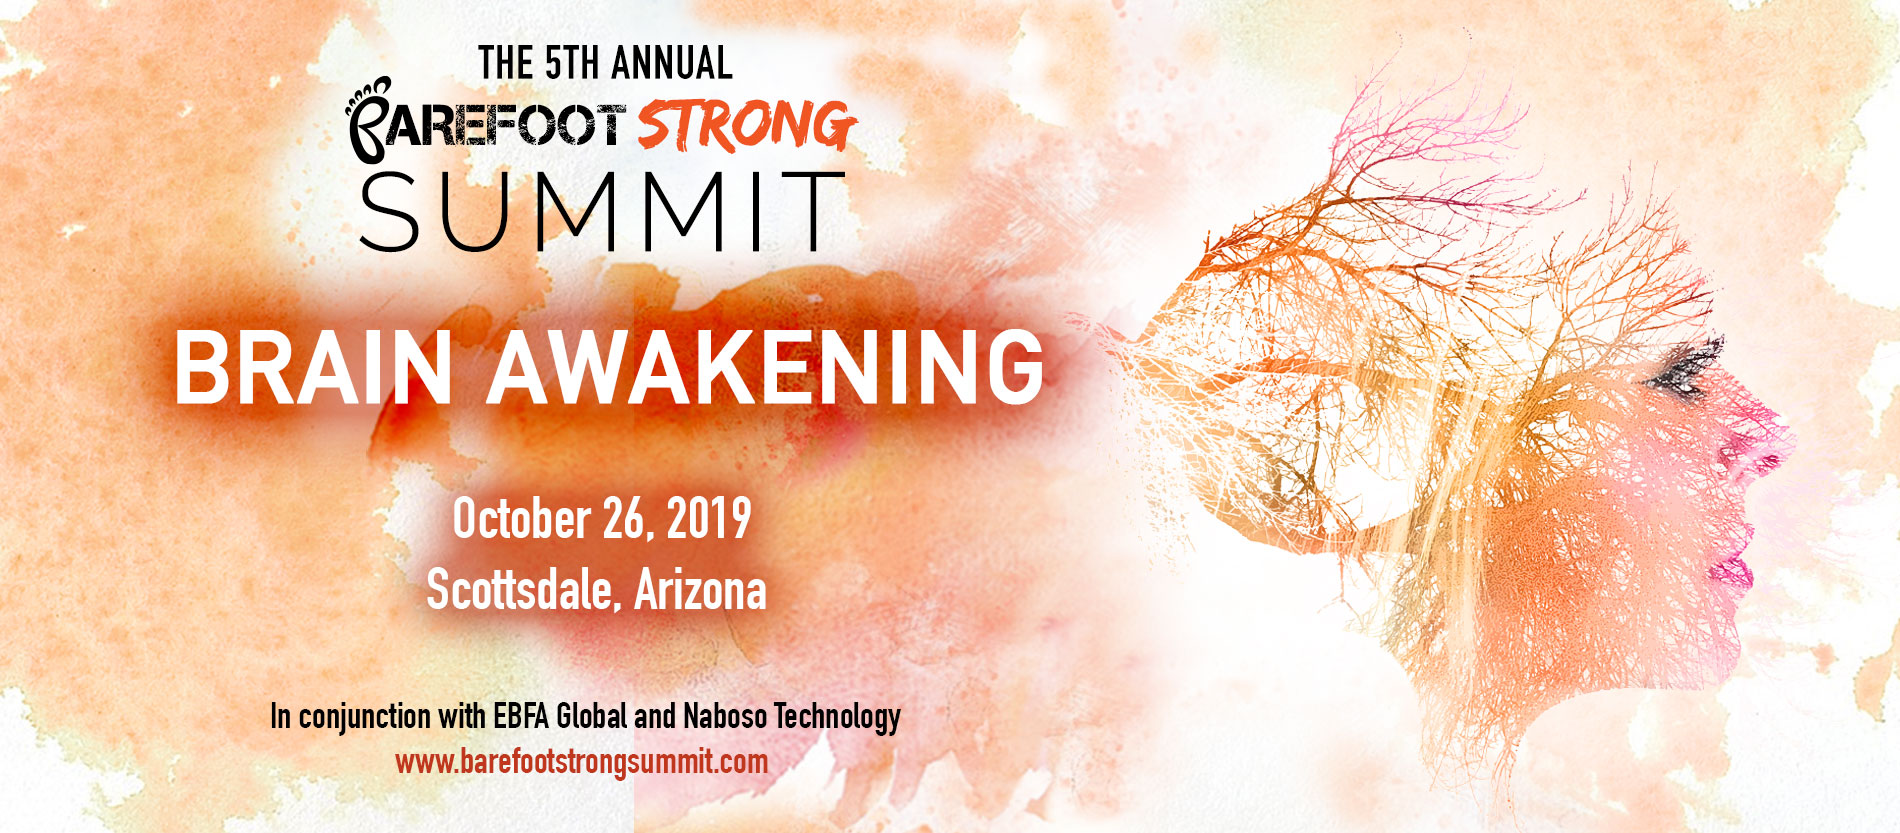 BTSummit-2019-Brain_Awakening_wide.jpg